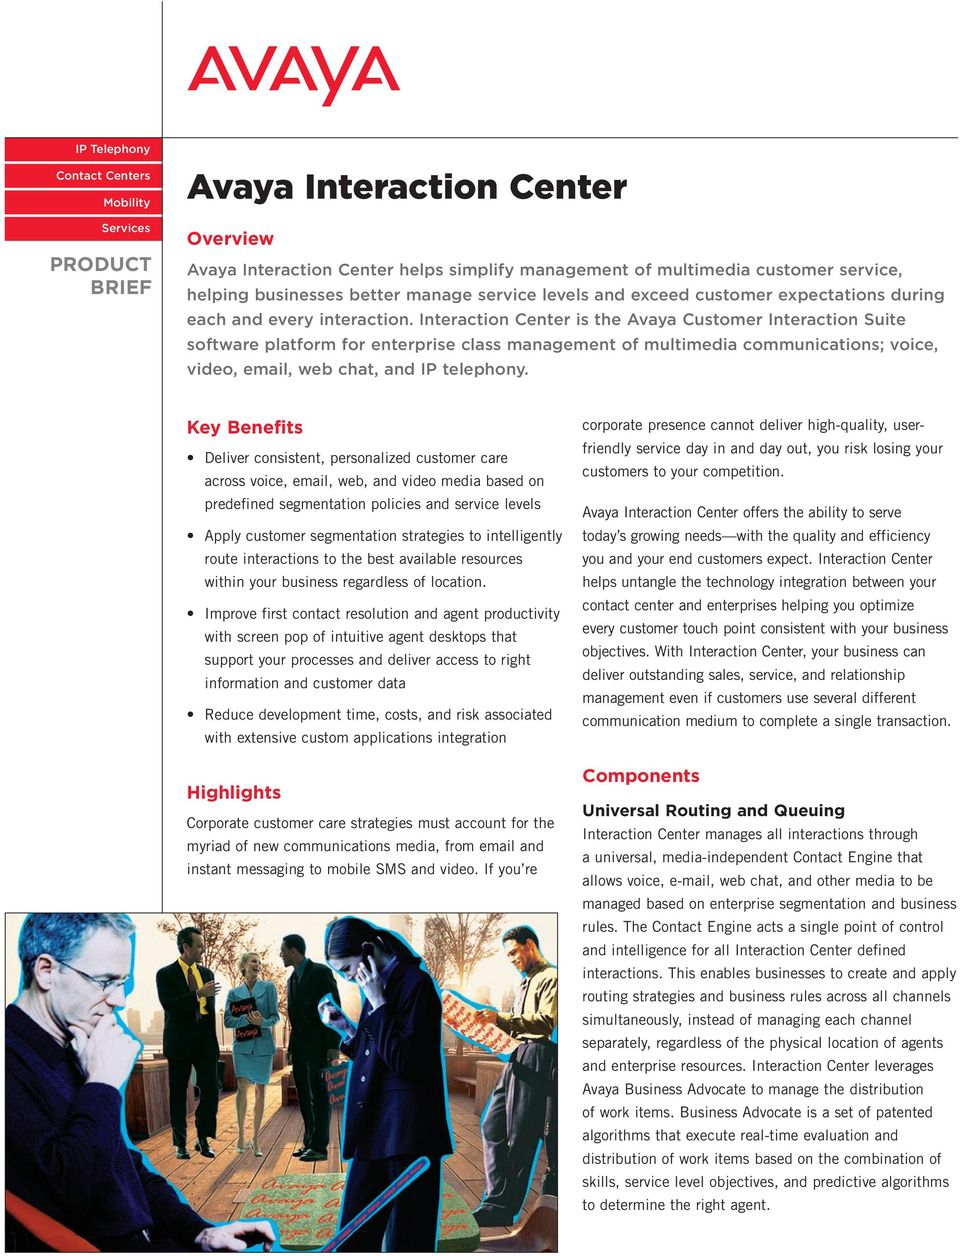 Interaction Center is the Avaya Customer Interaction Suite software platform for enterprise class management of multimedia communications; voice, video, email, web chat, and IP telephony.